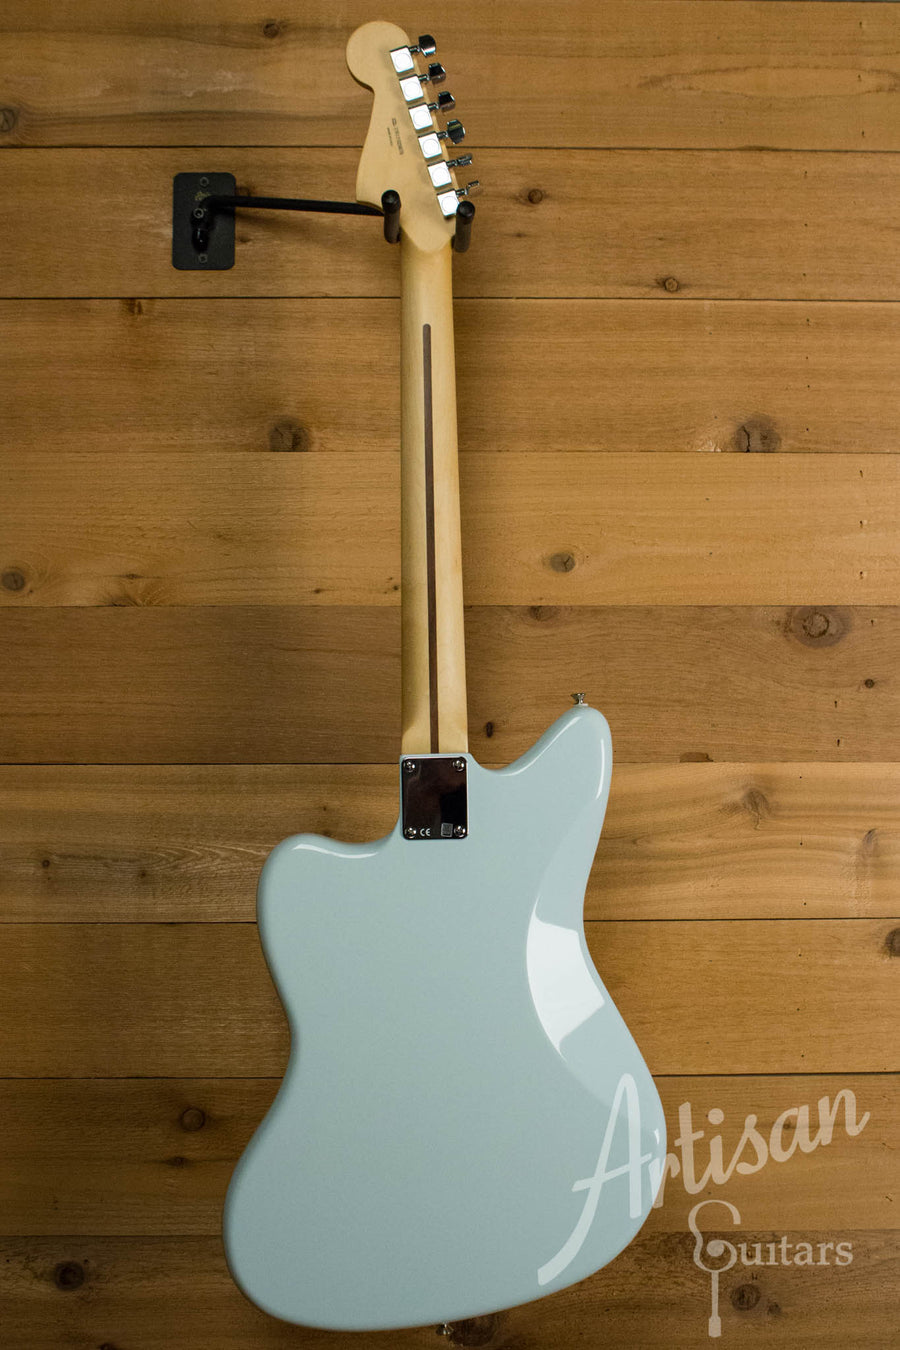 Fender Jazzmaster American Special Guitar CME Exclusive Sonic Blue Pre-Owned 2015 ID-10539